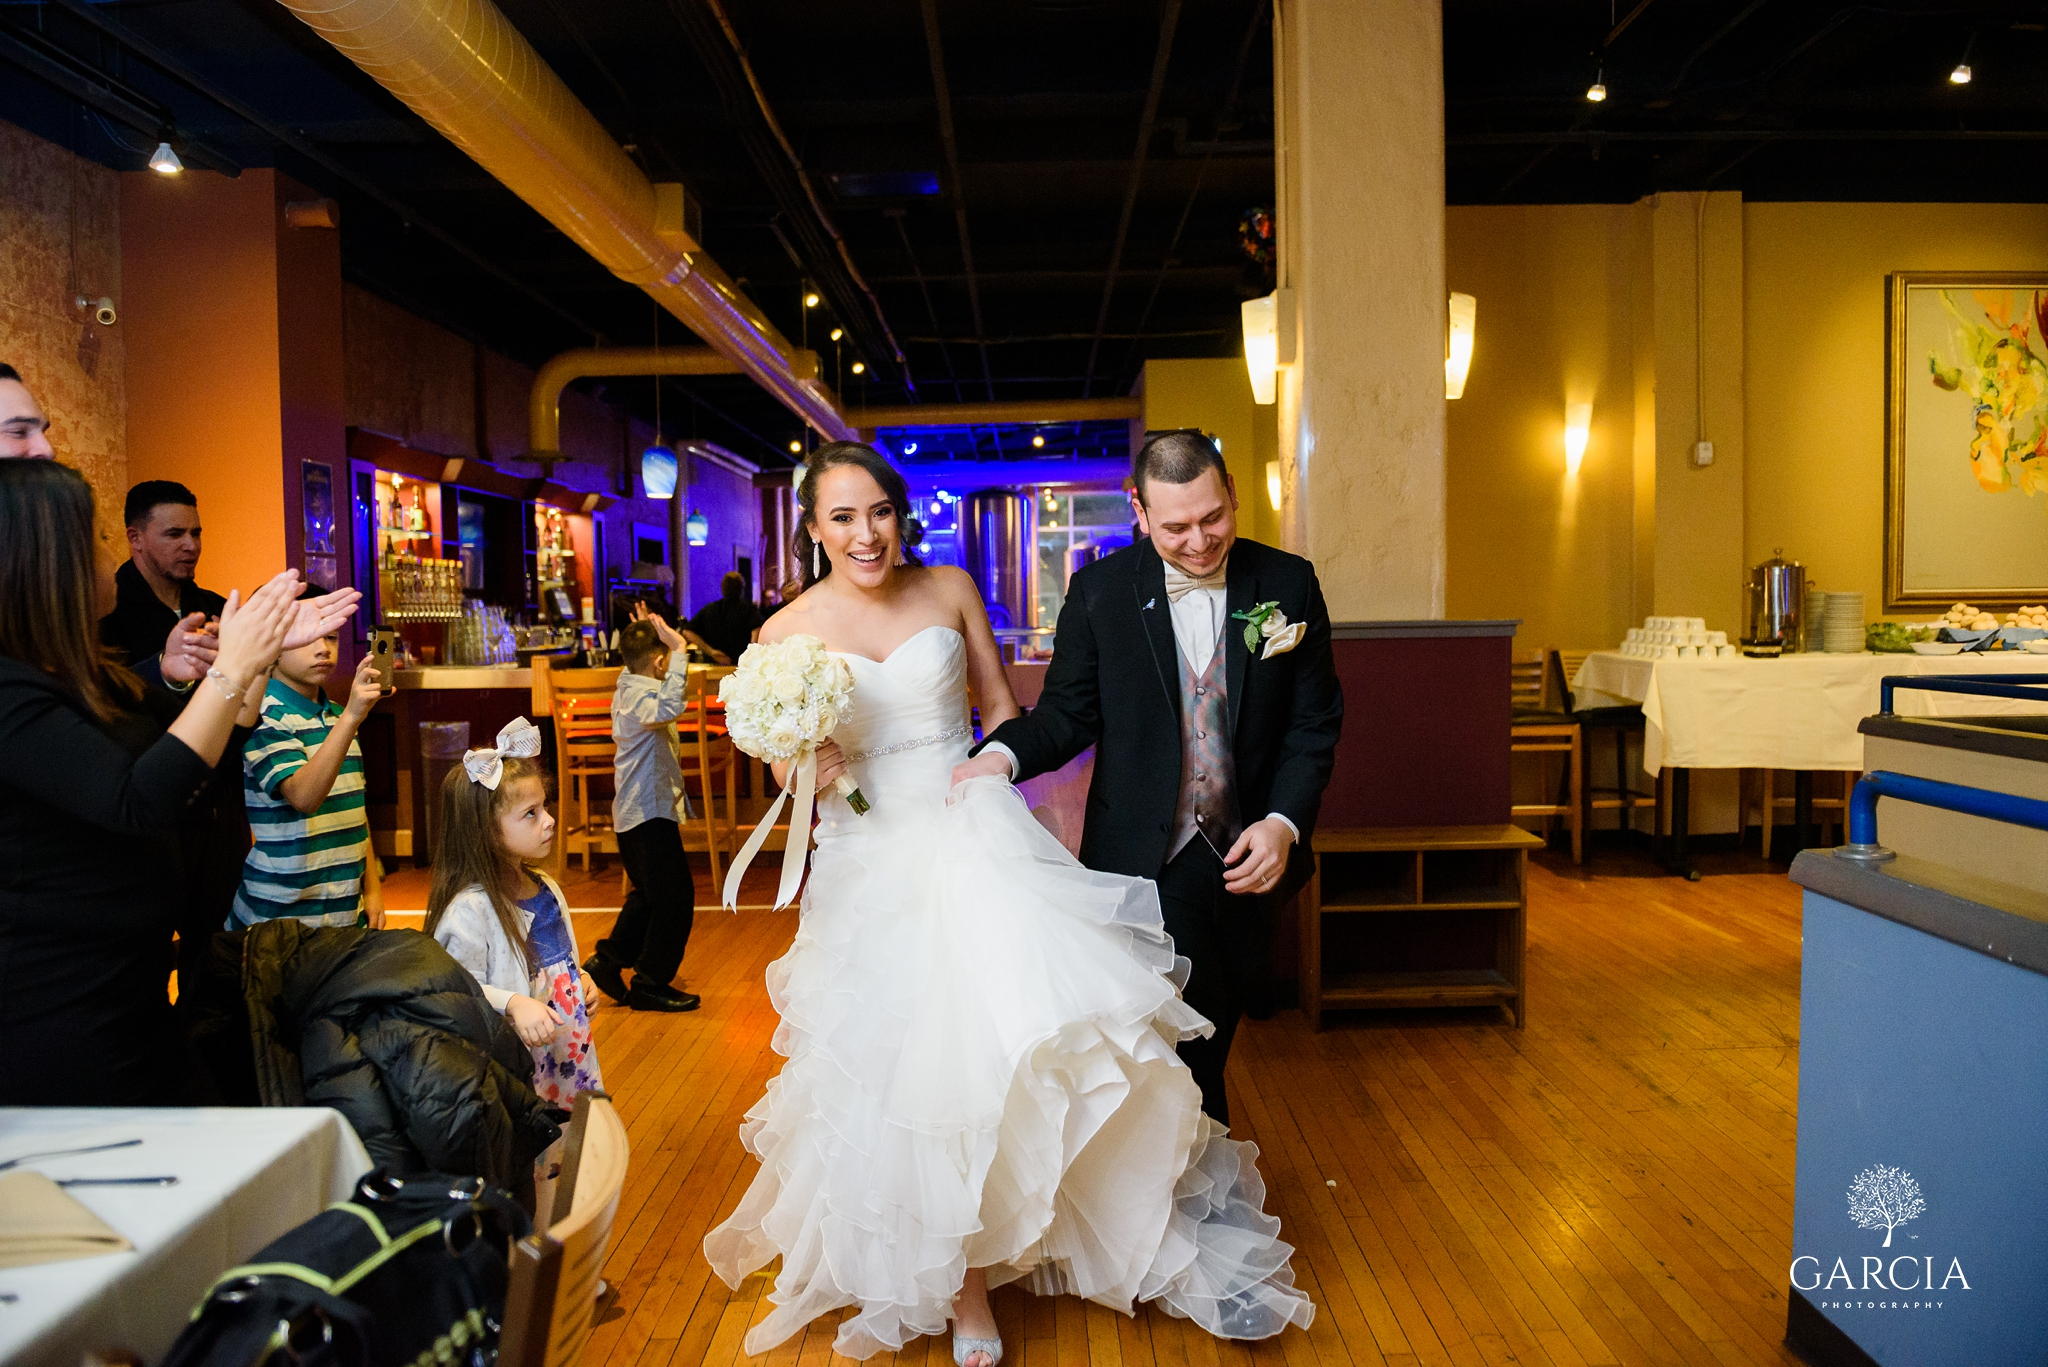 Emily-Junior-Wedding-Garcia-Photography-4371.jpg